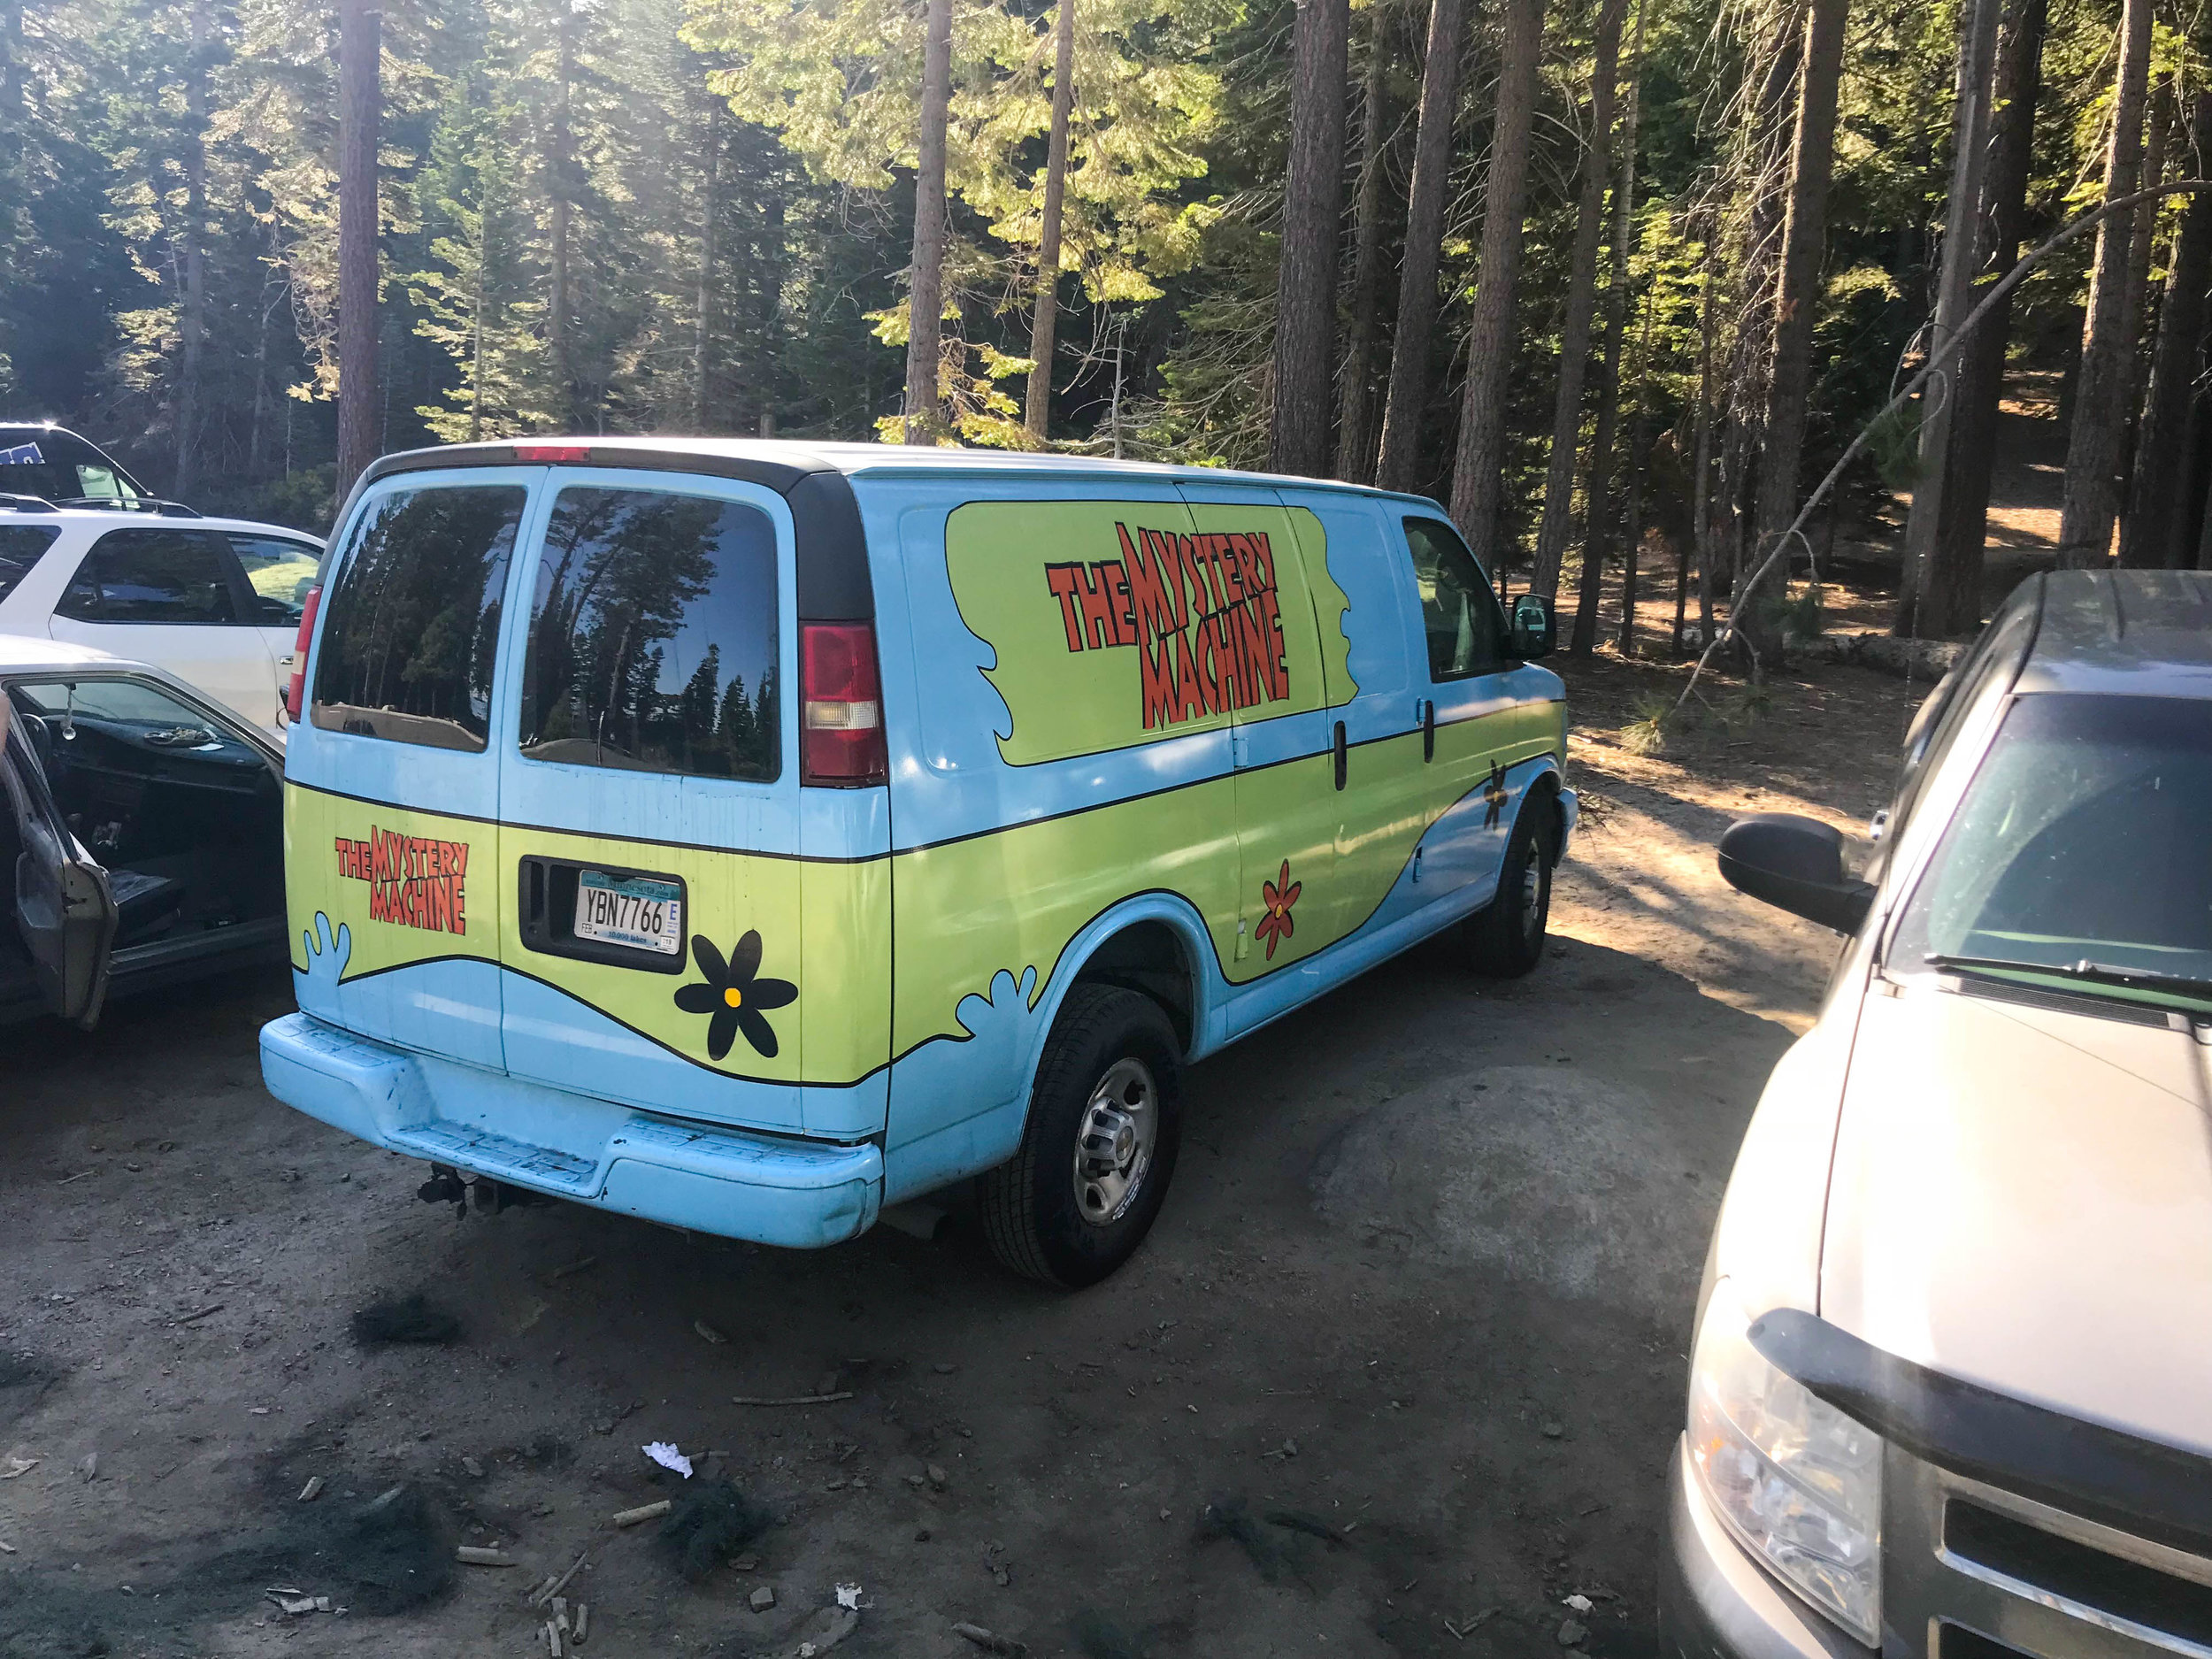 Tahoe 2018 Hiking-Mystery Machine.jpg